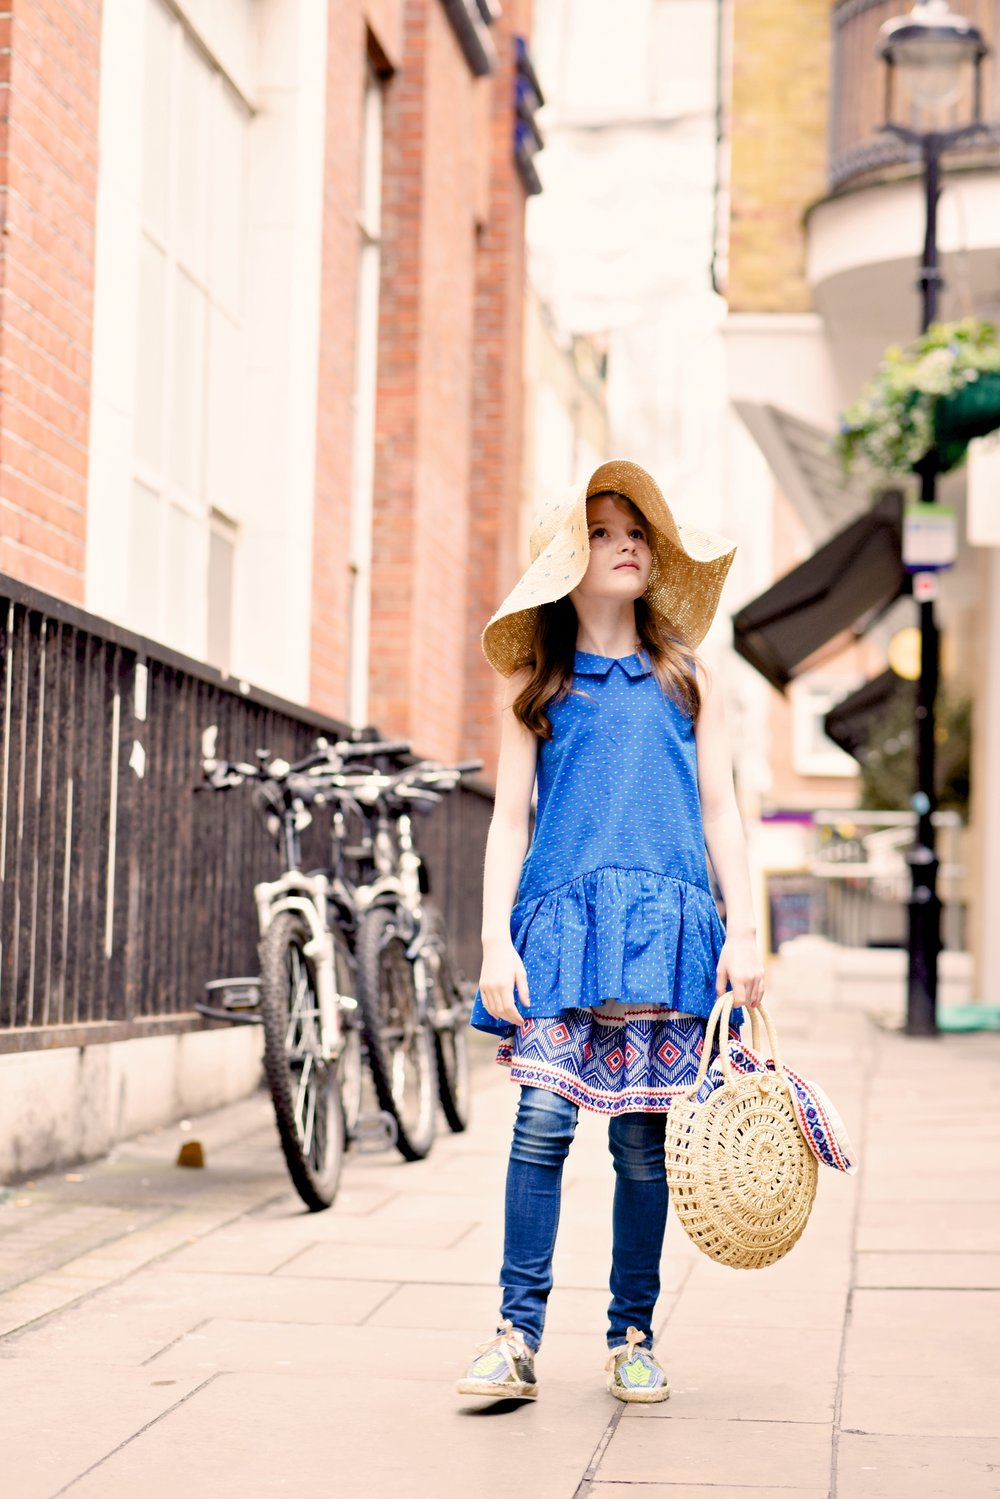 Enfant+Street+Style+by+Gina+Kim+Photography++Bonpoint+hat.jpeg